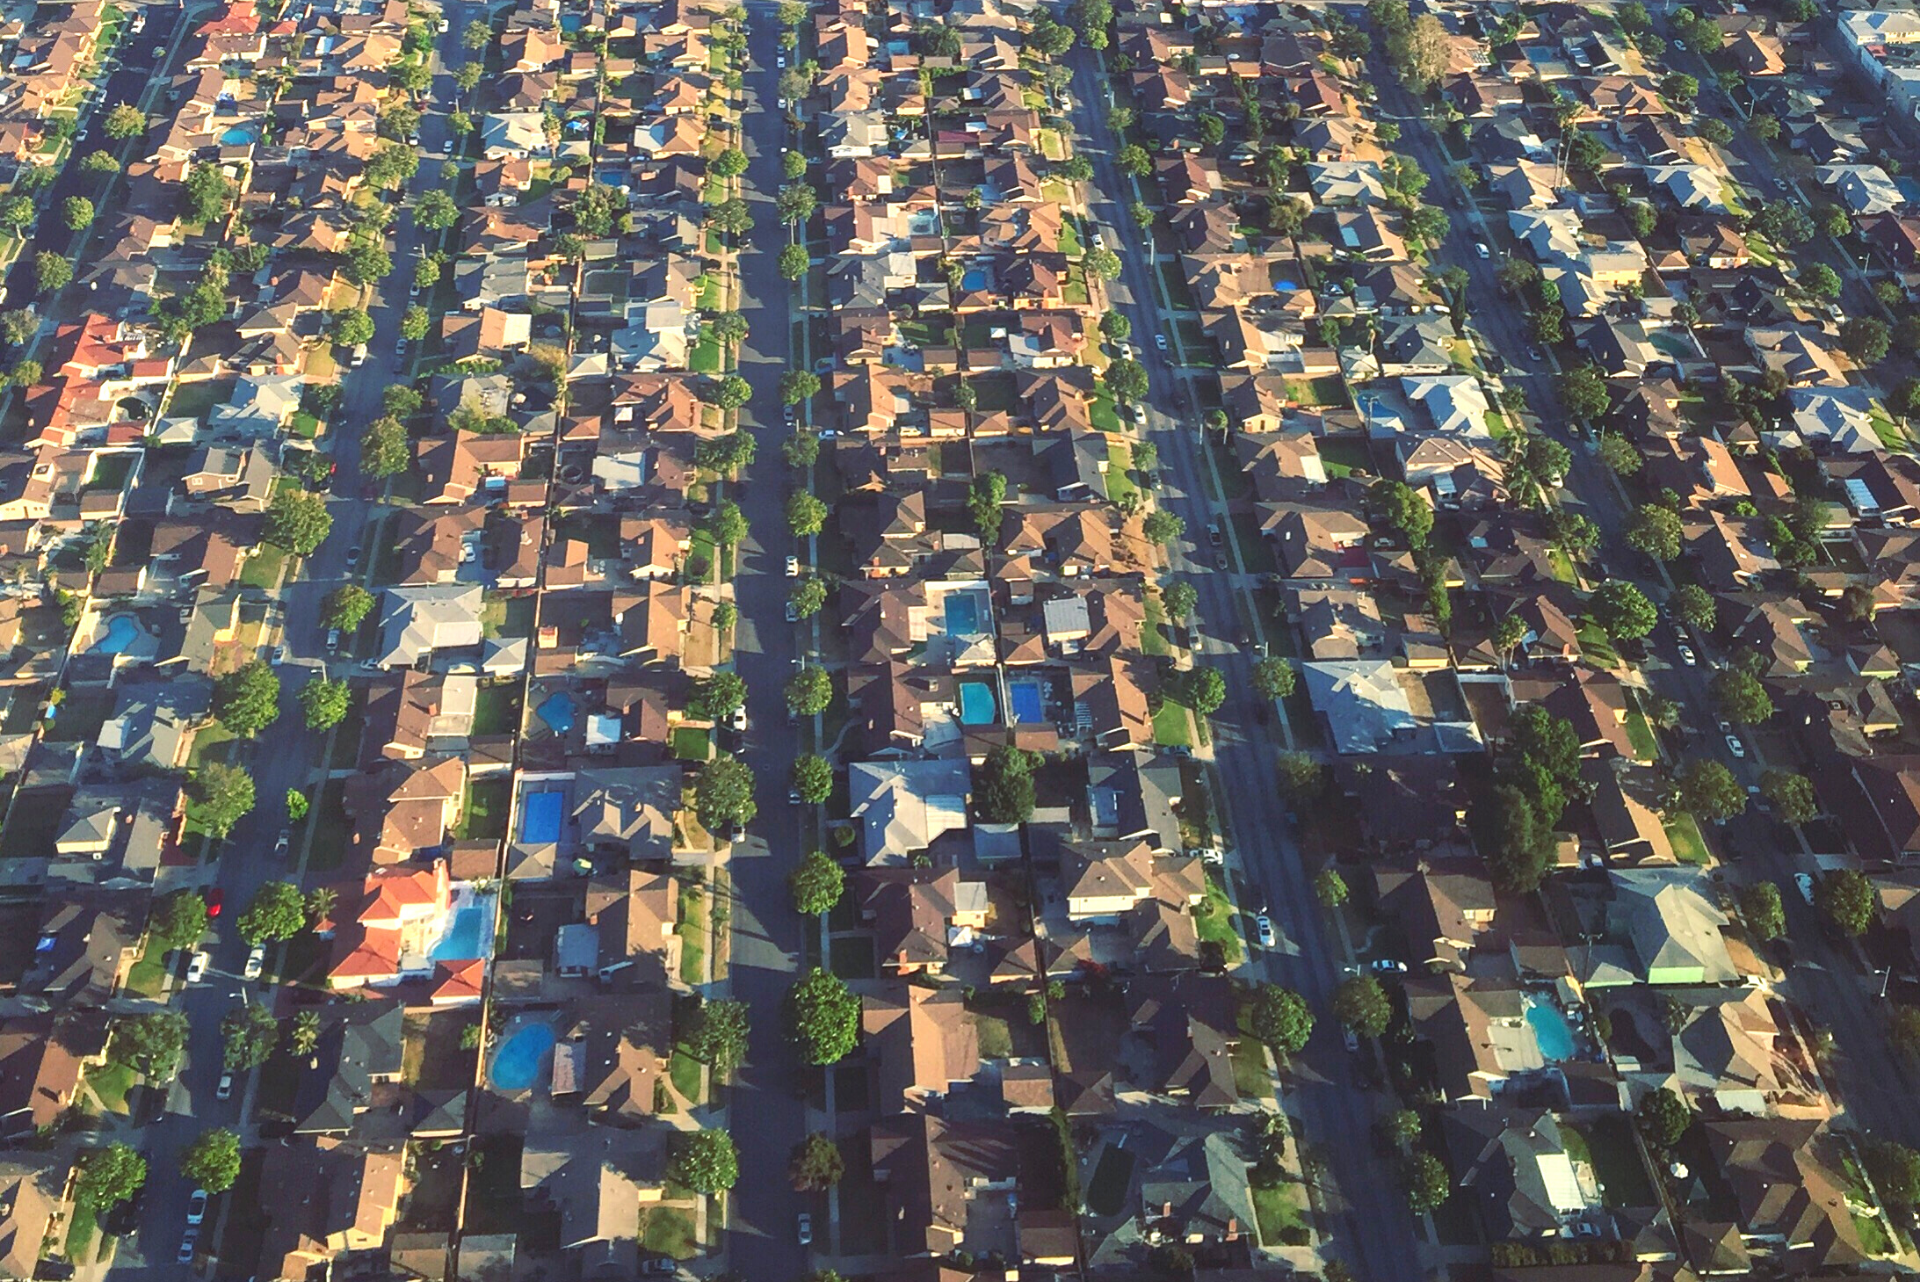 Aerial view of neighbourhood with lots of swimming pools